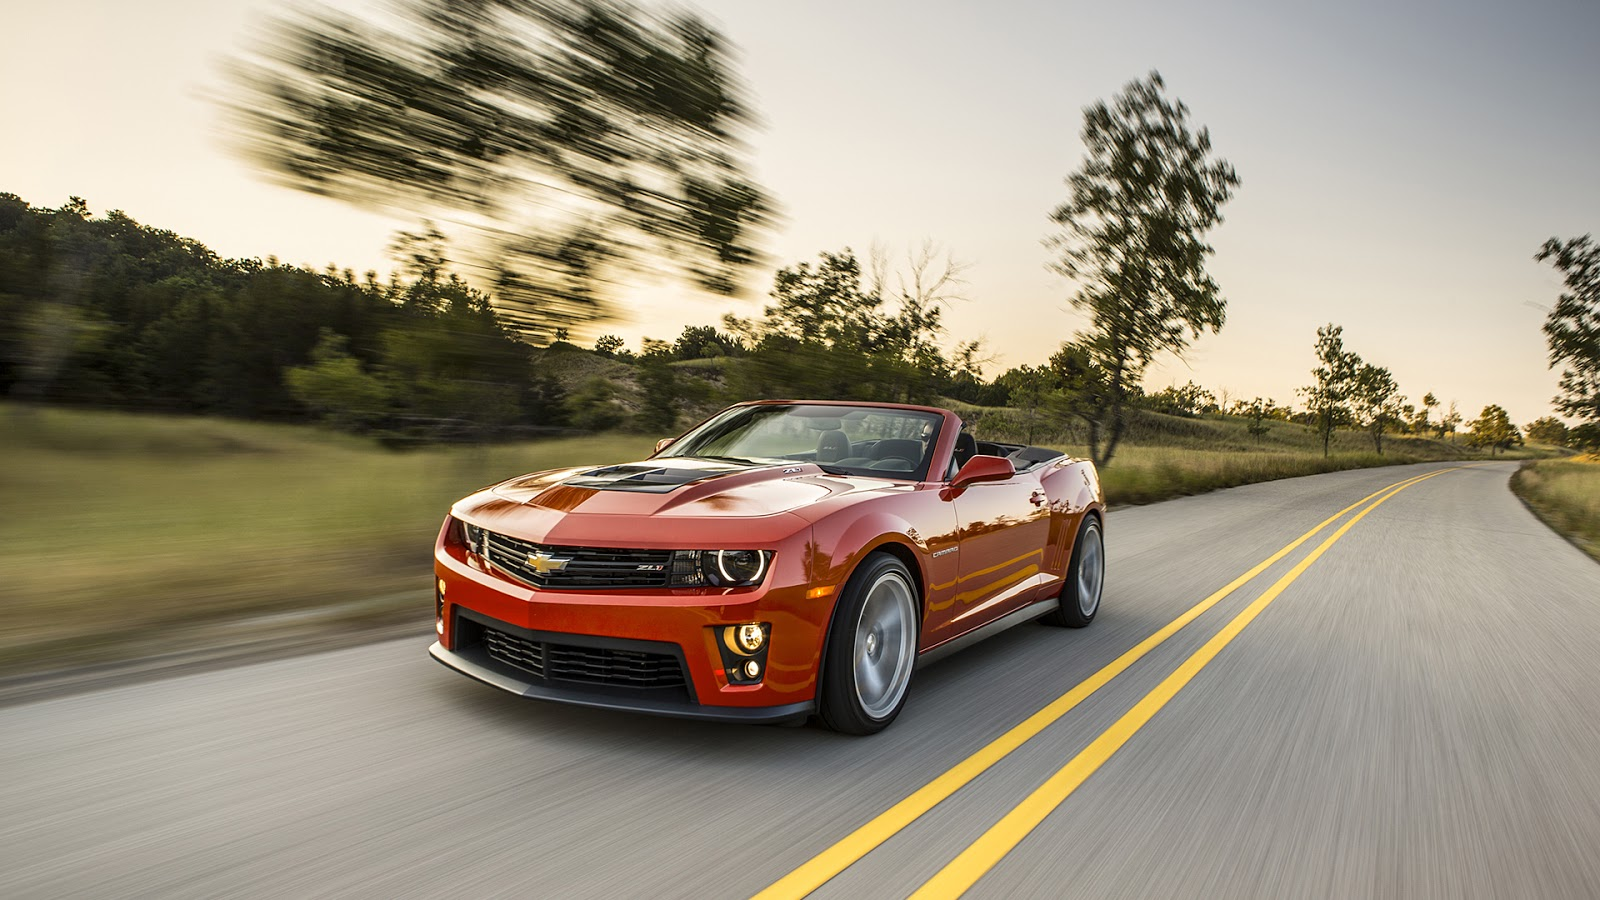 2013 chevrolet camaro zl1 convertible wallpapers. Black Bedroom Furniture Sets. Home Design Ideas